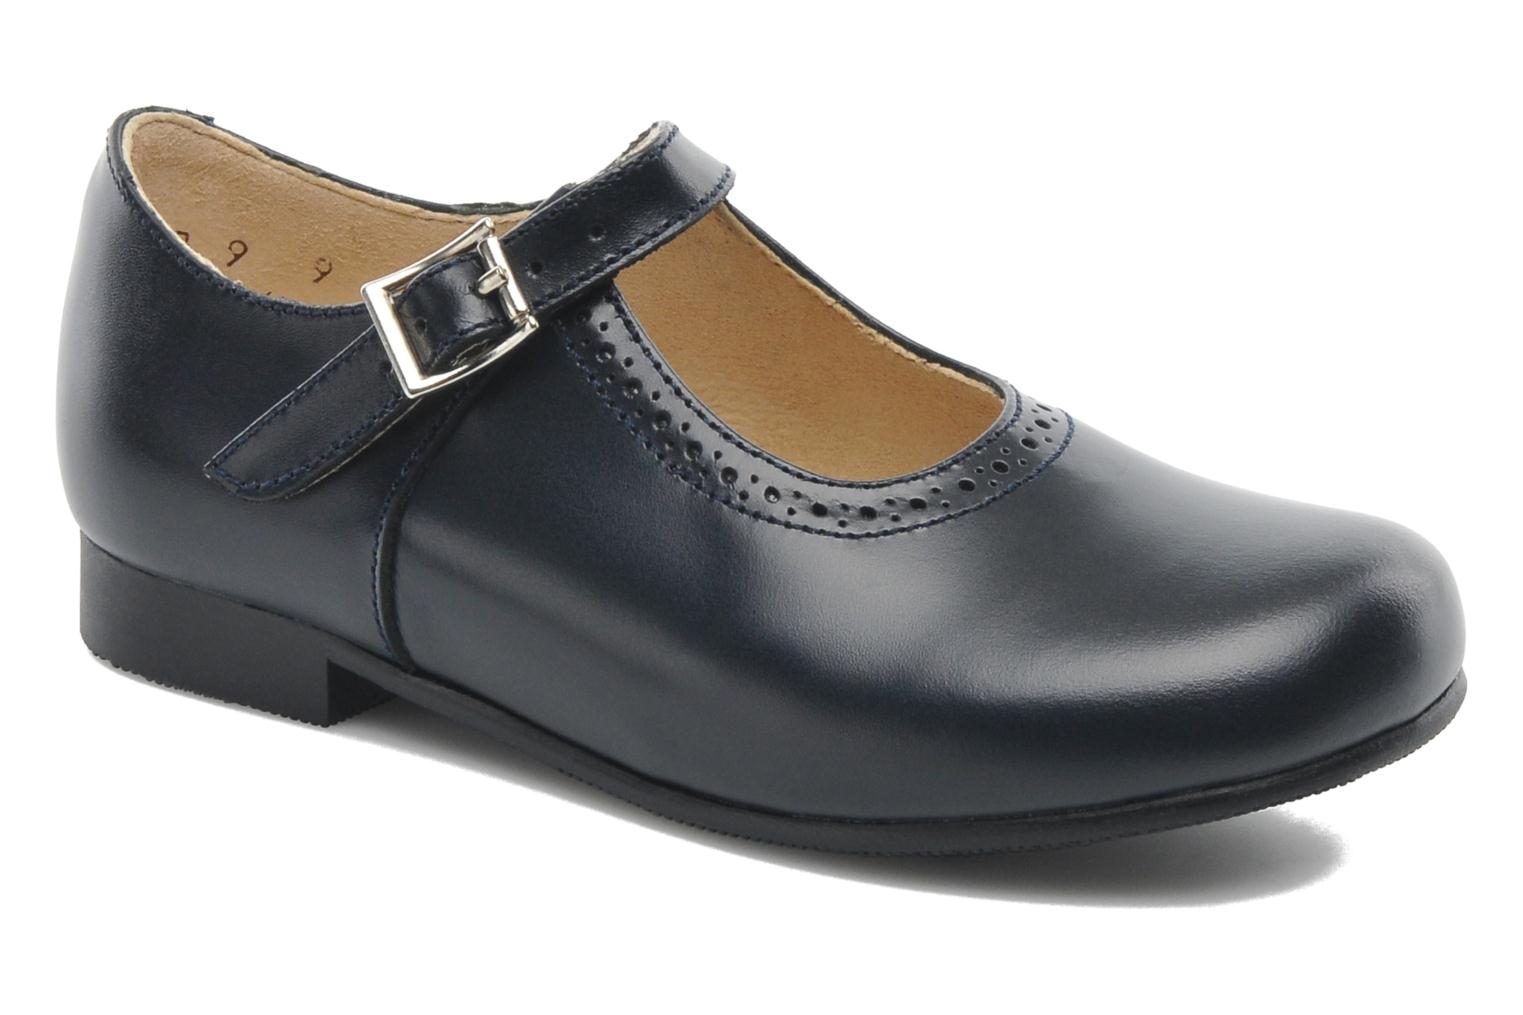 Clare Navy leather